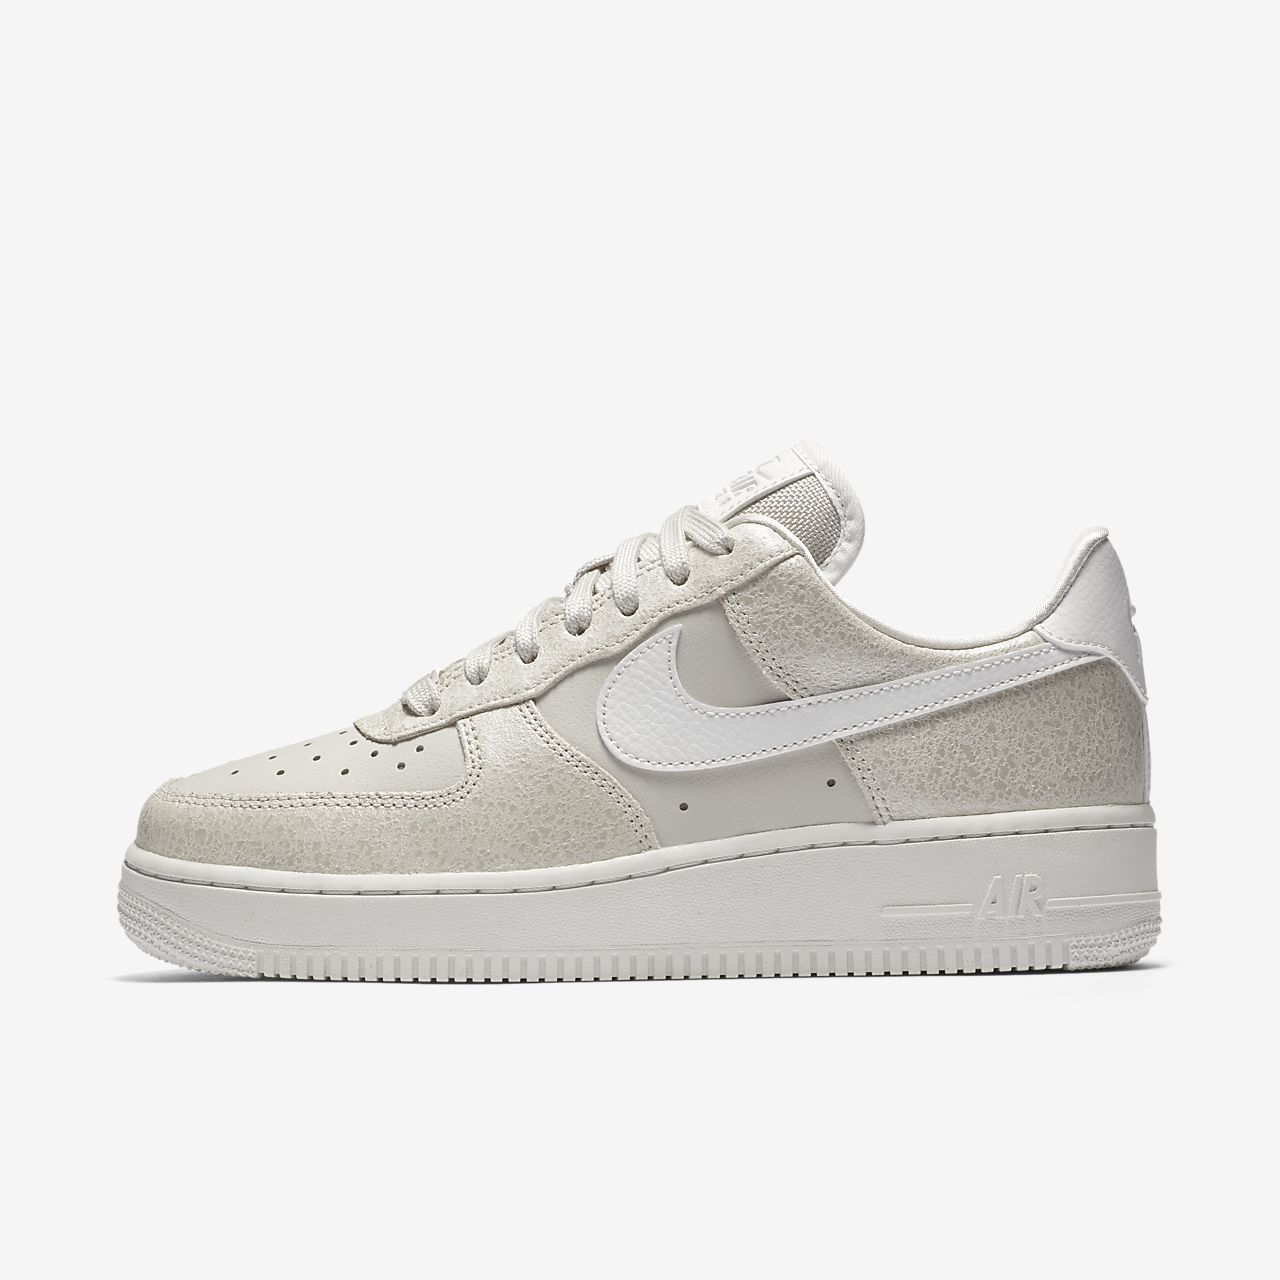 nike air force 1 39 07 low premium women 39 s shoe gb. Black Bedroom Furniture Sets. Home Design Ideas